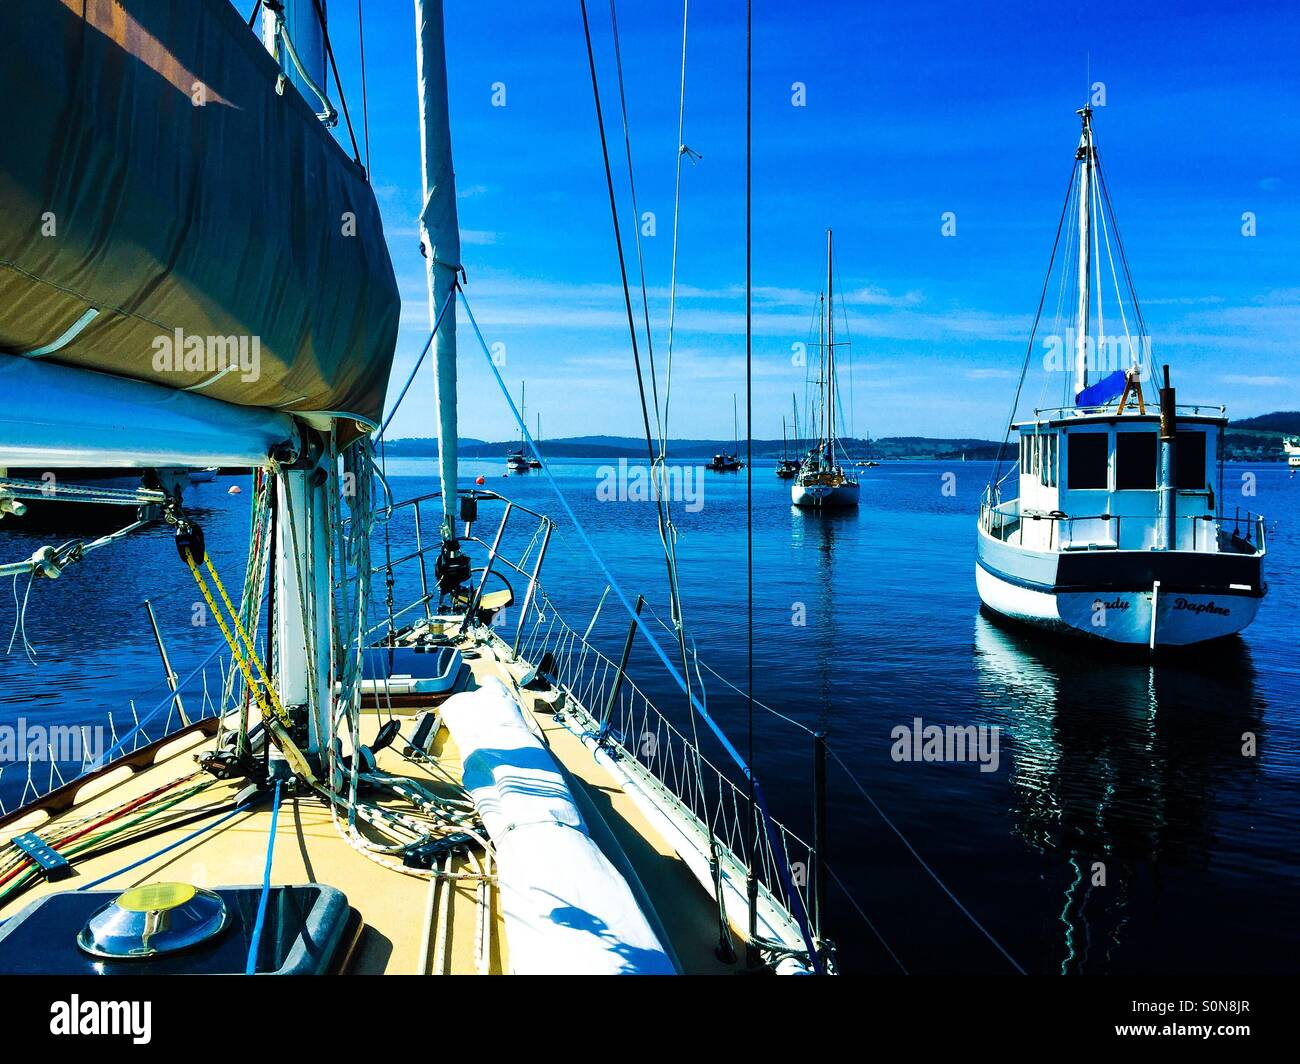 Heading out of the Bay - Stock Image